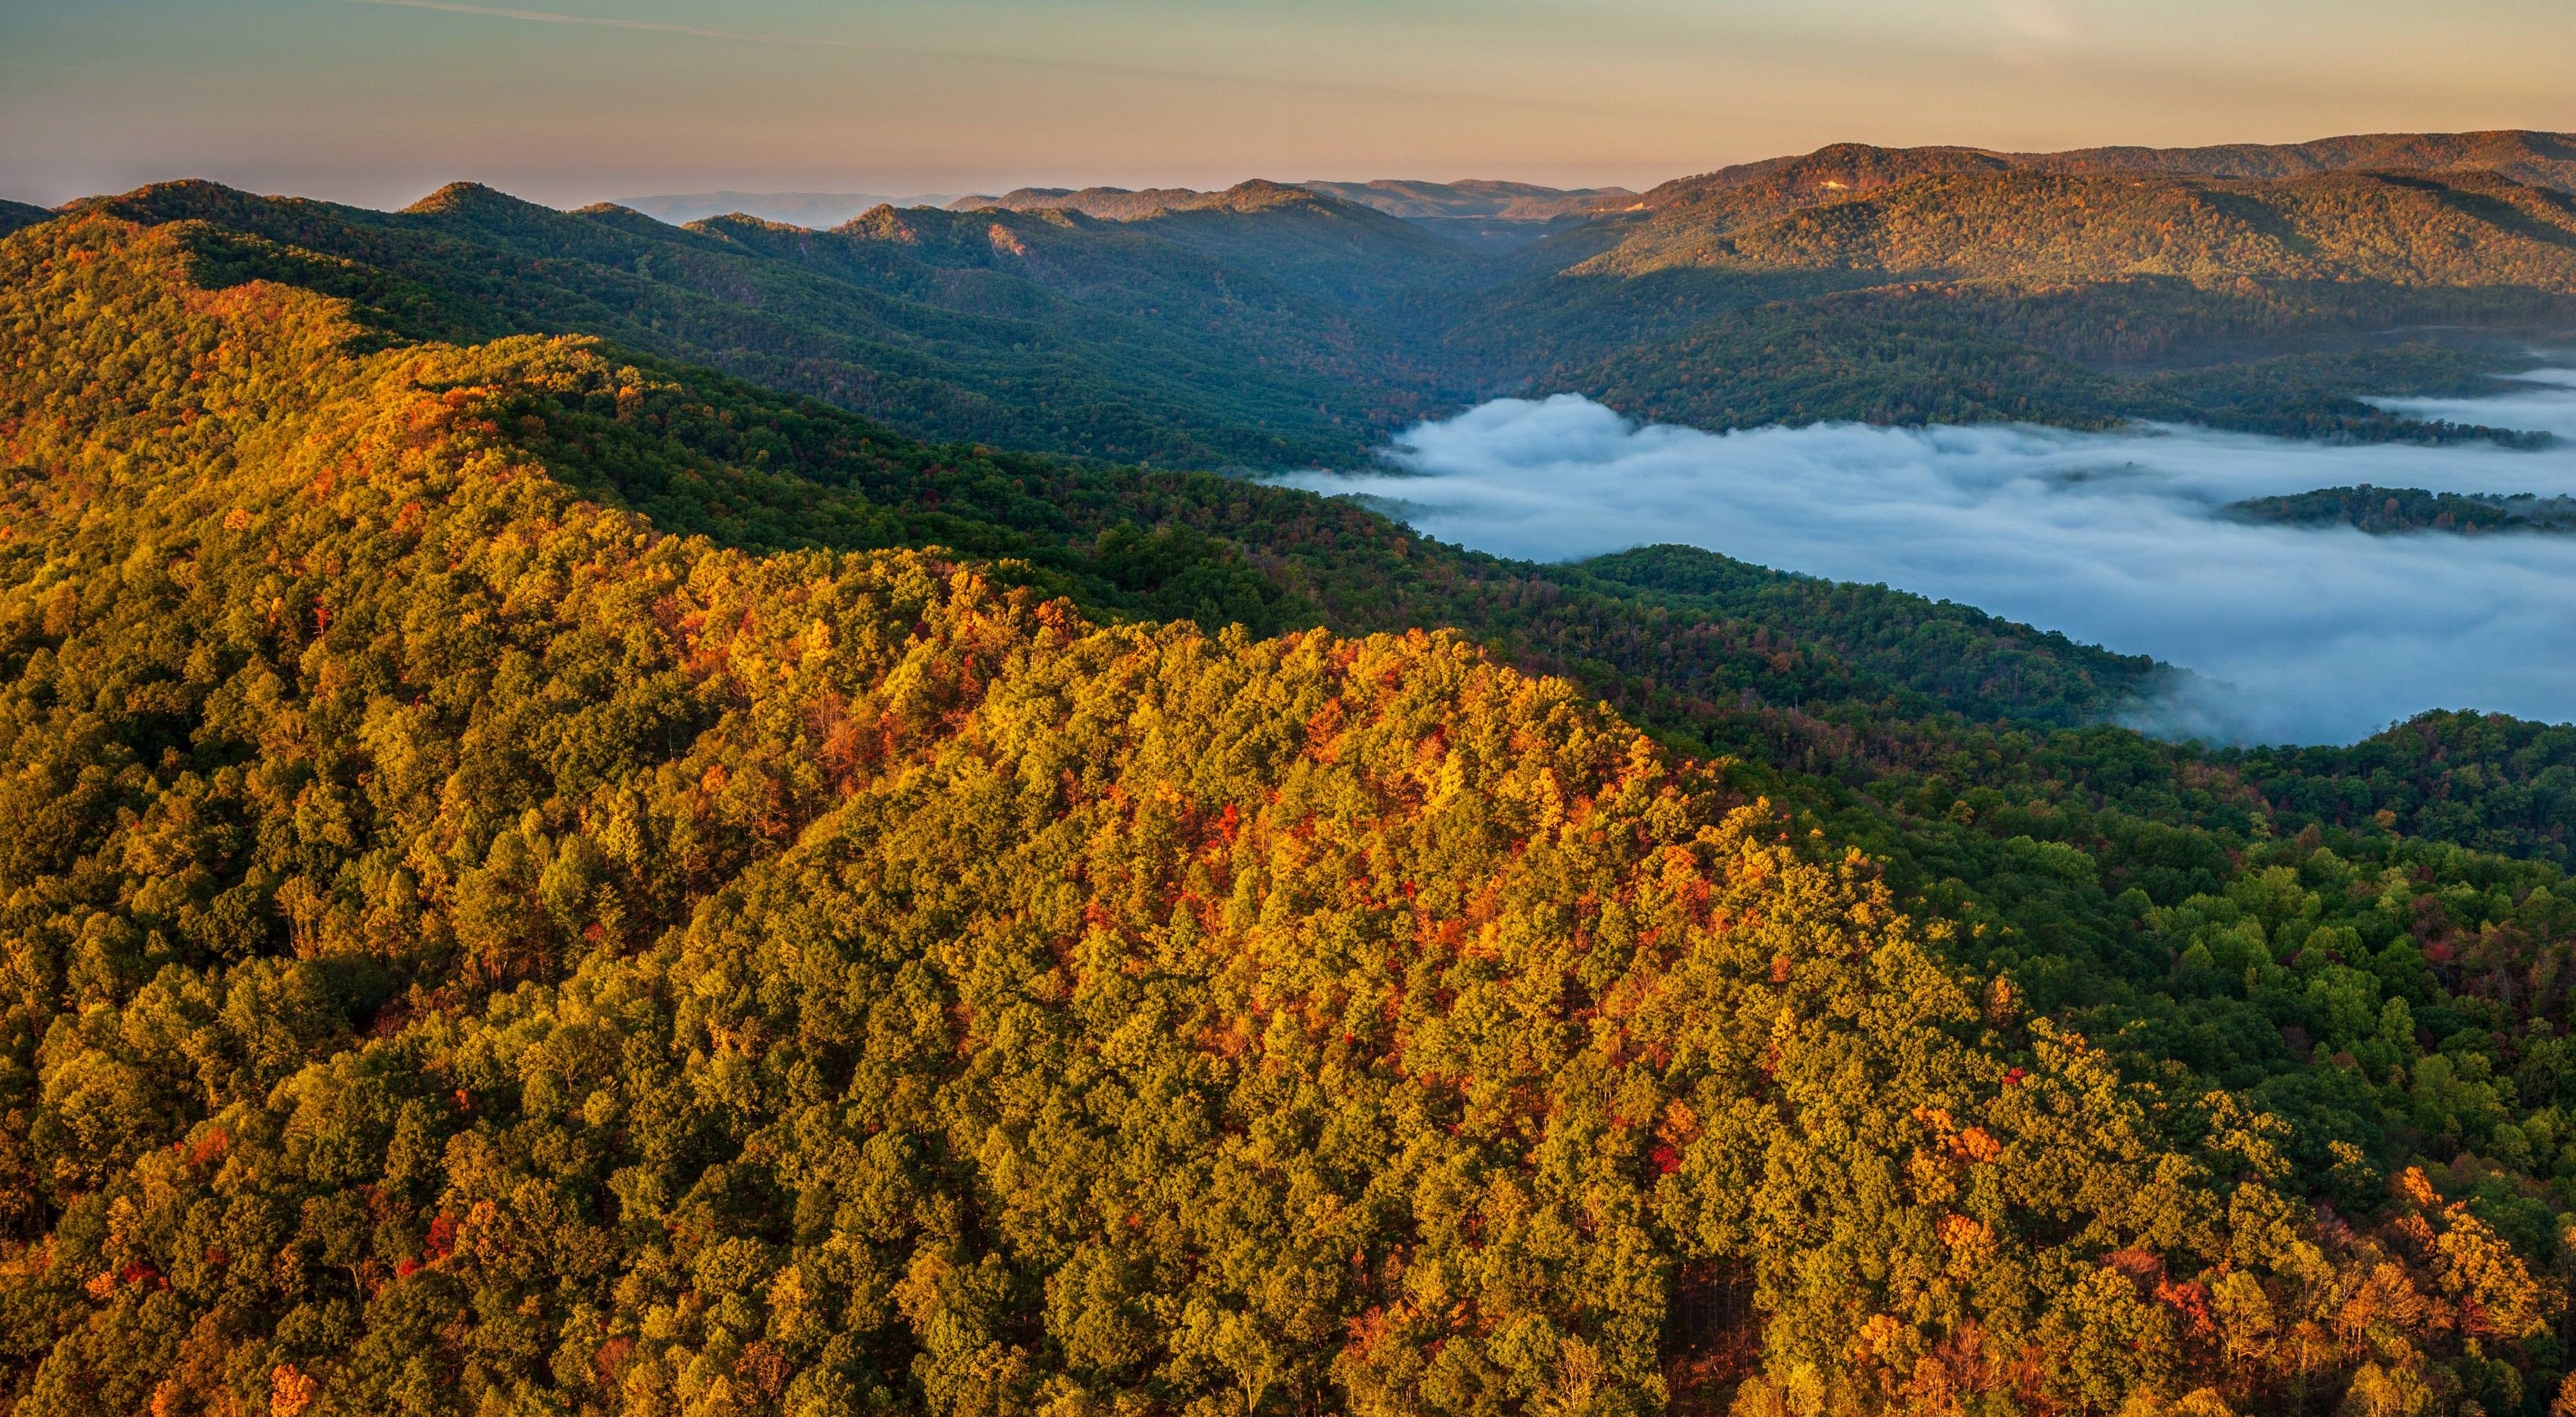 A mist rises up next to a colorful forested ridge.